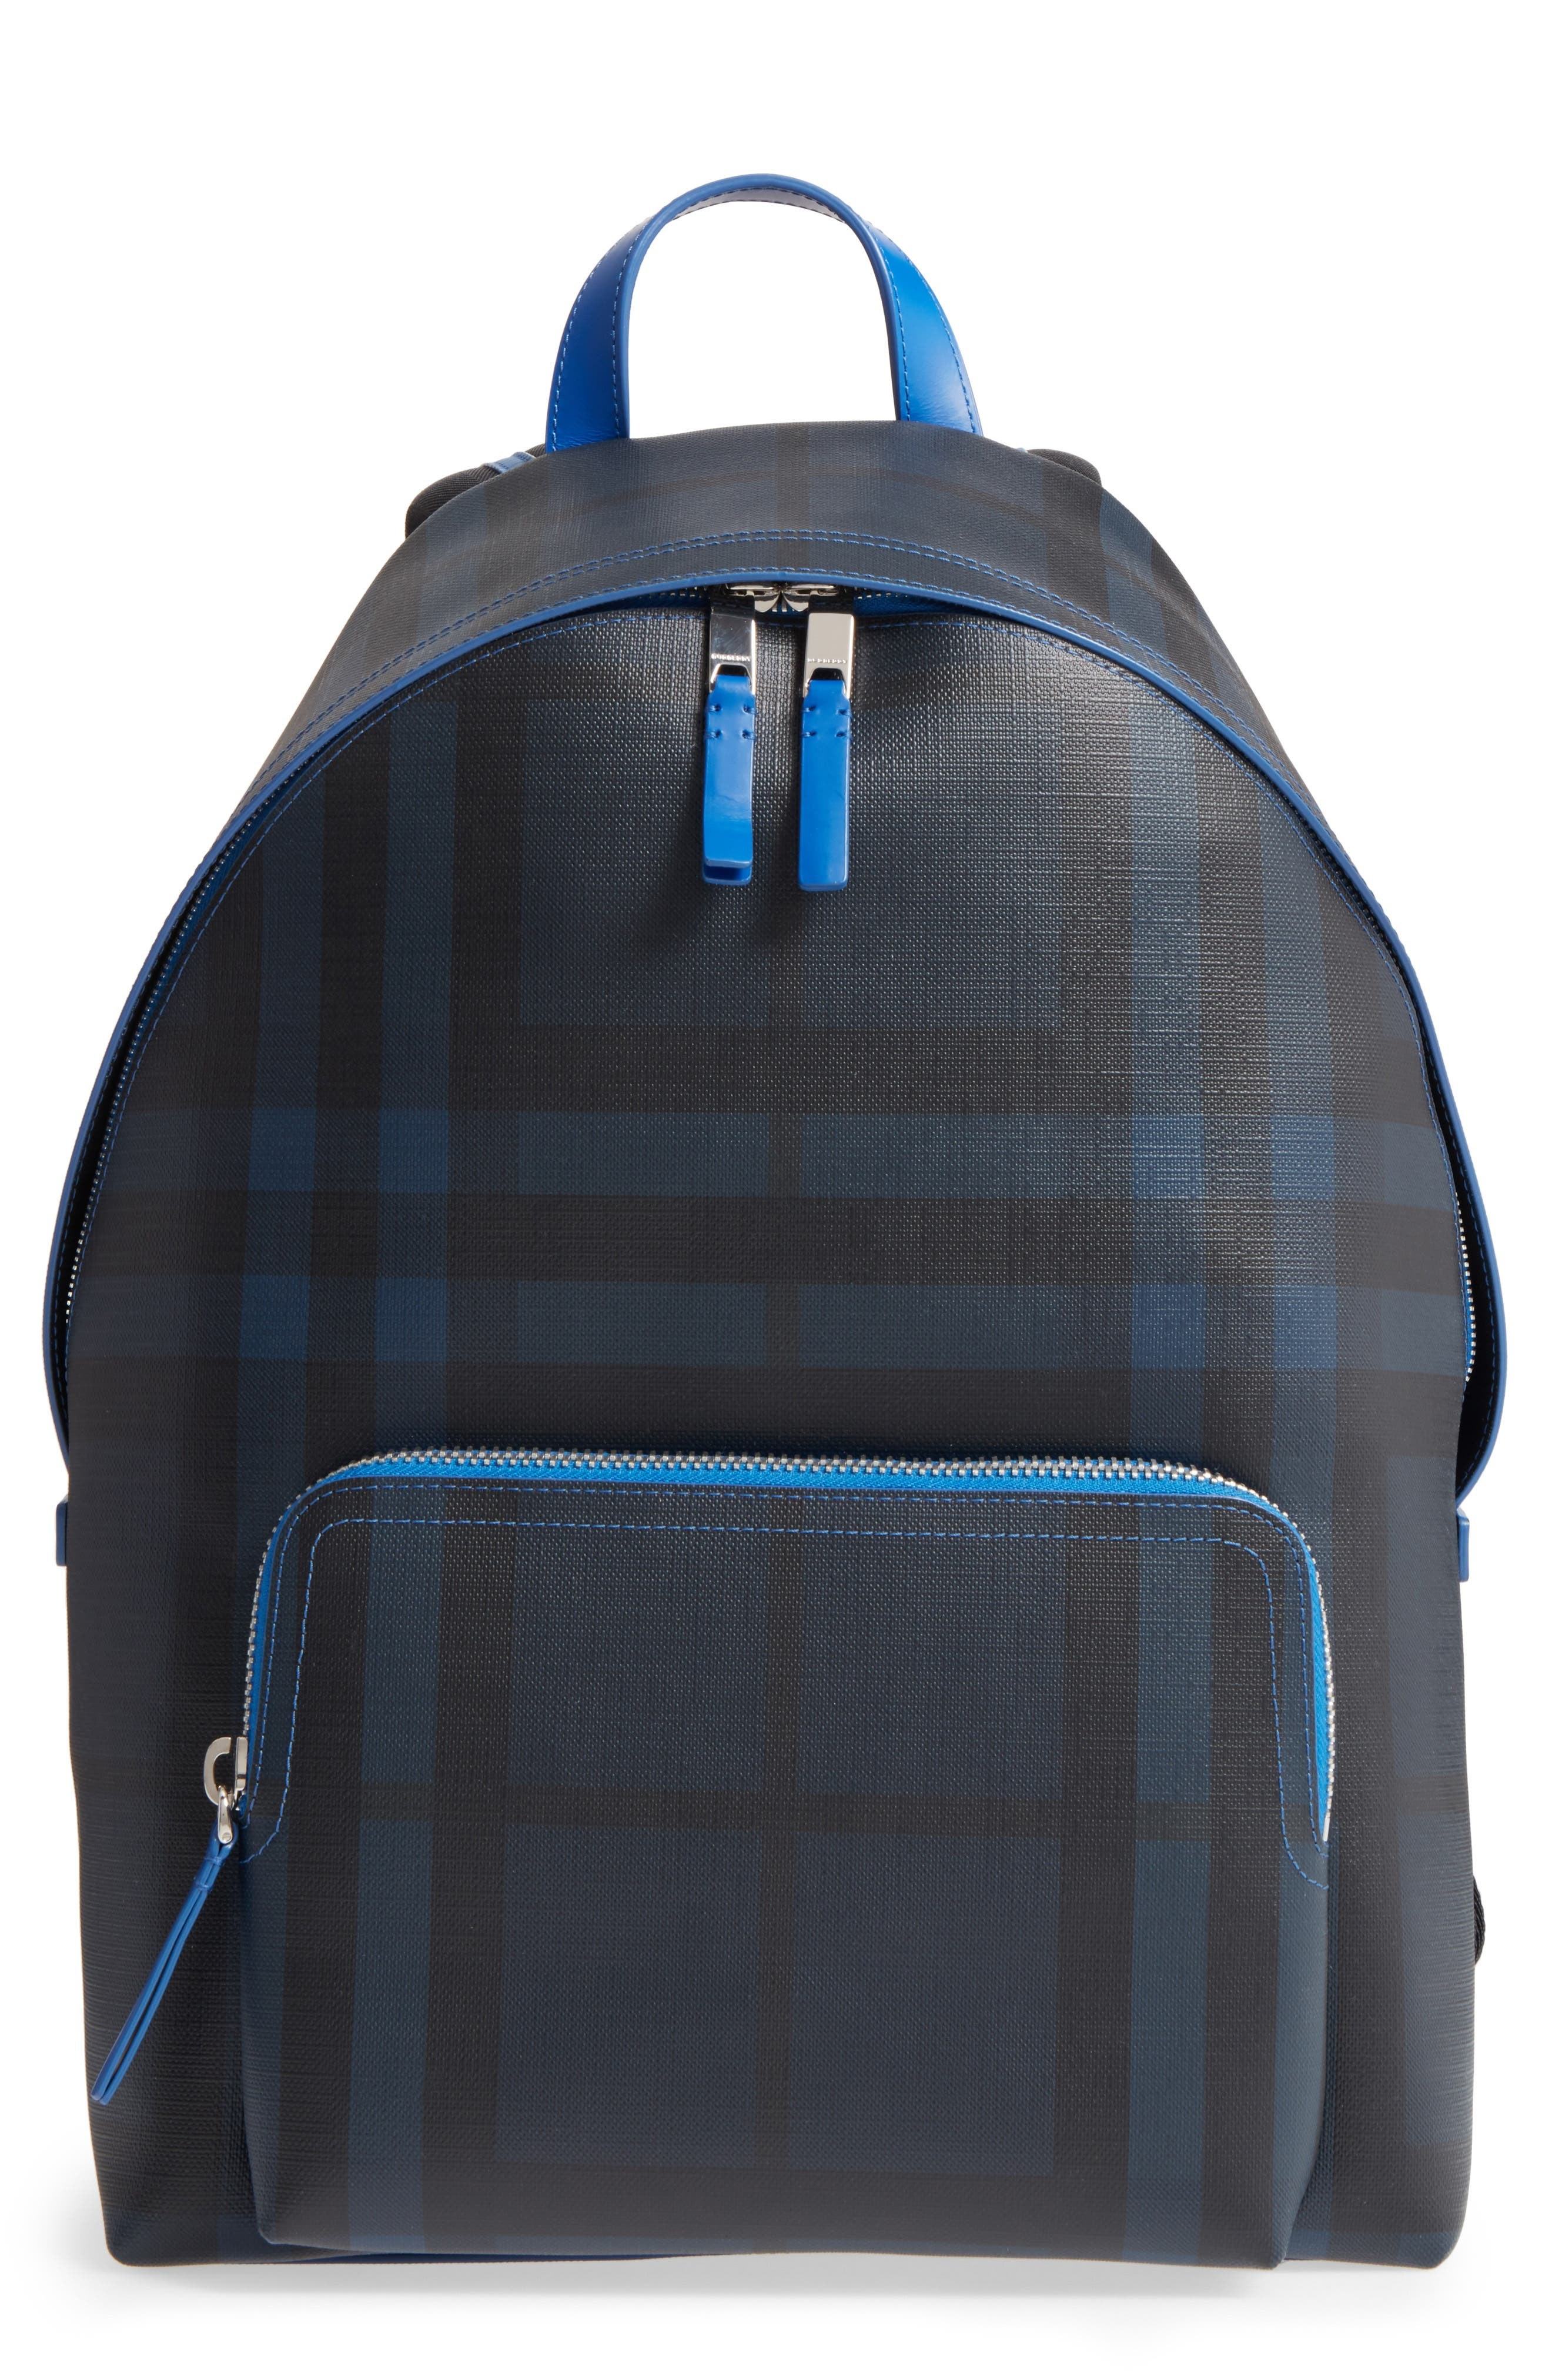 Burberry Check Faux Leather Backpack